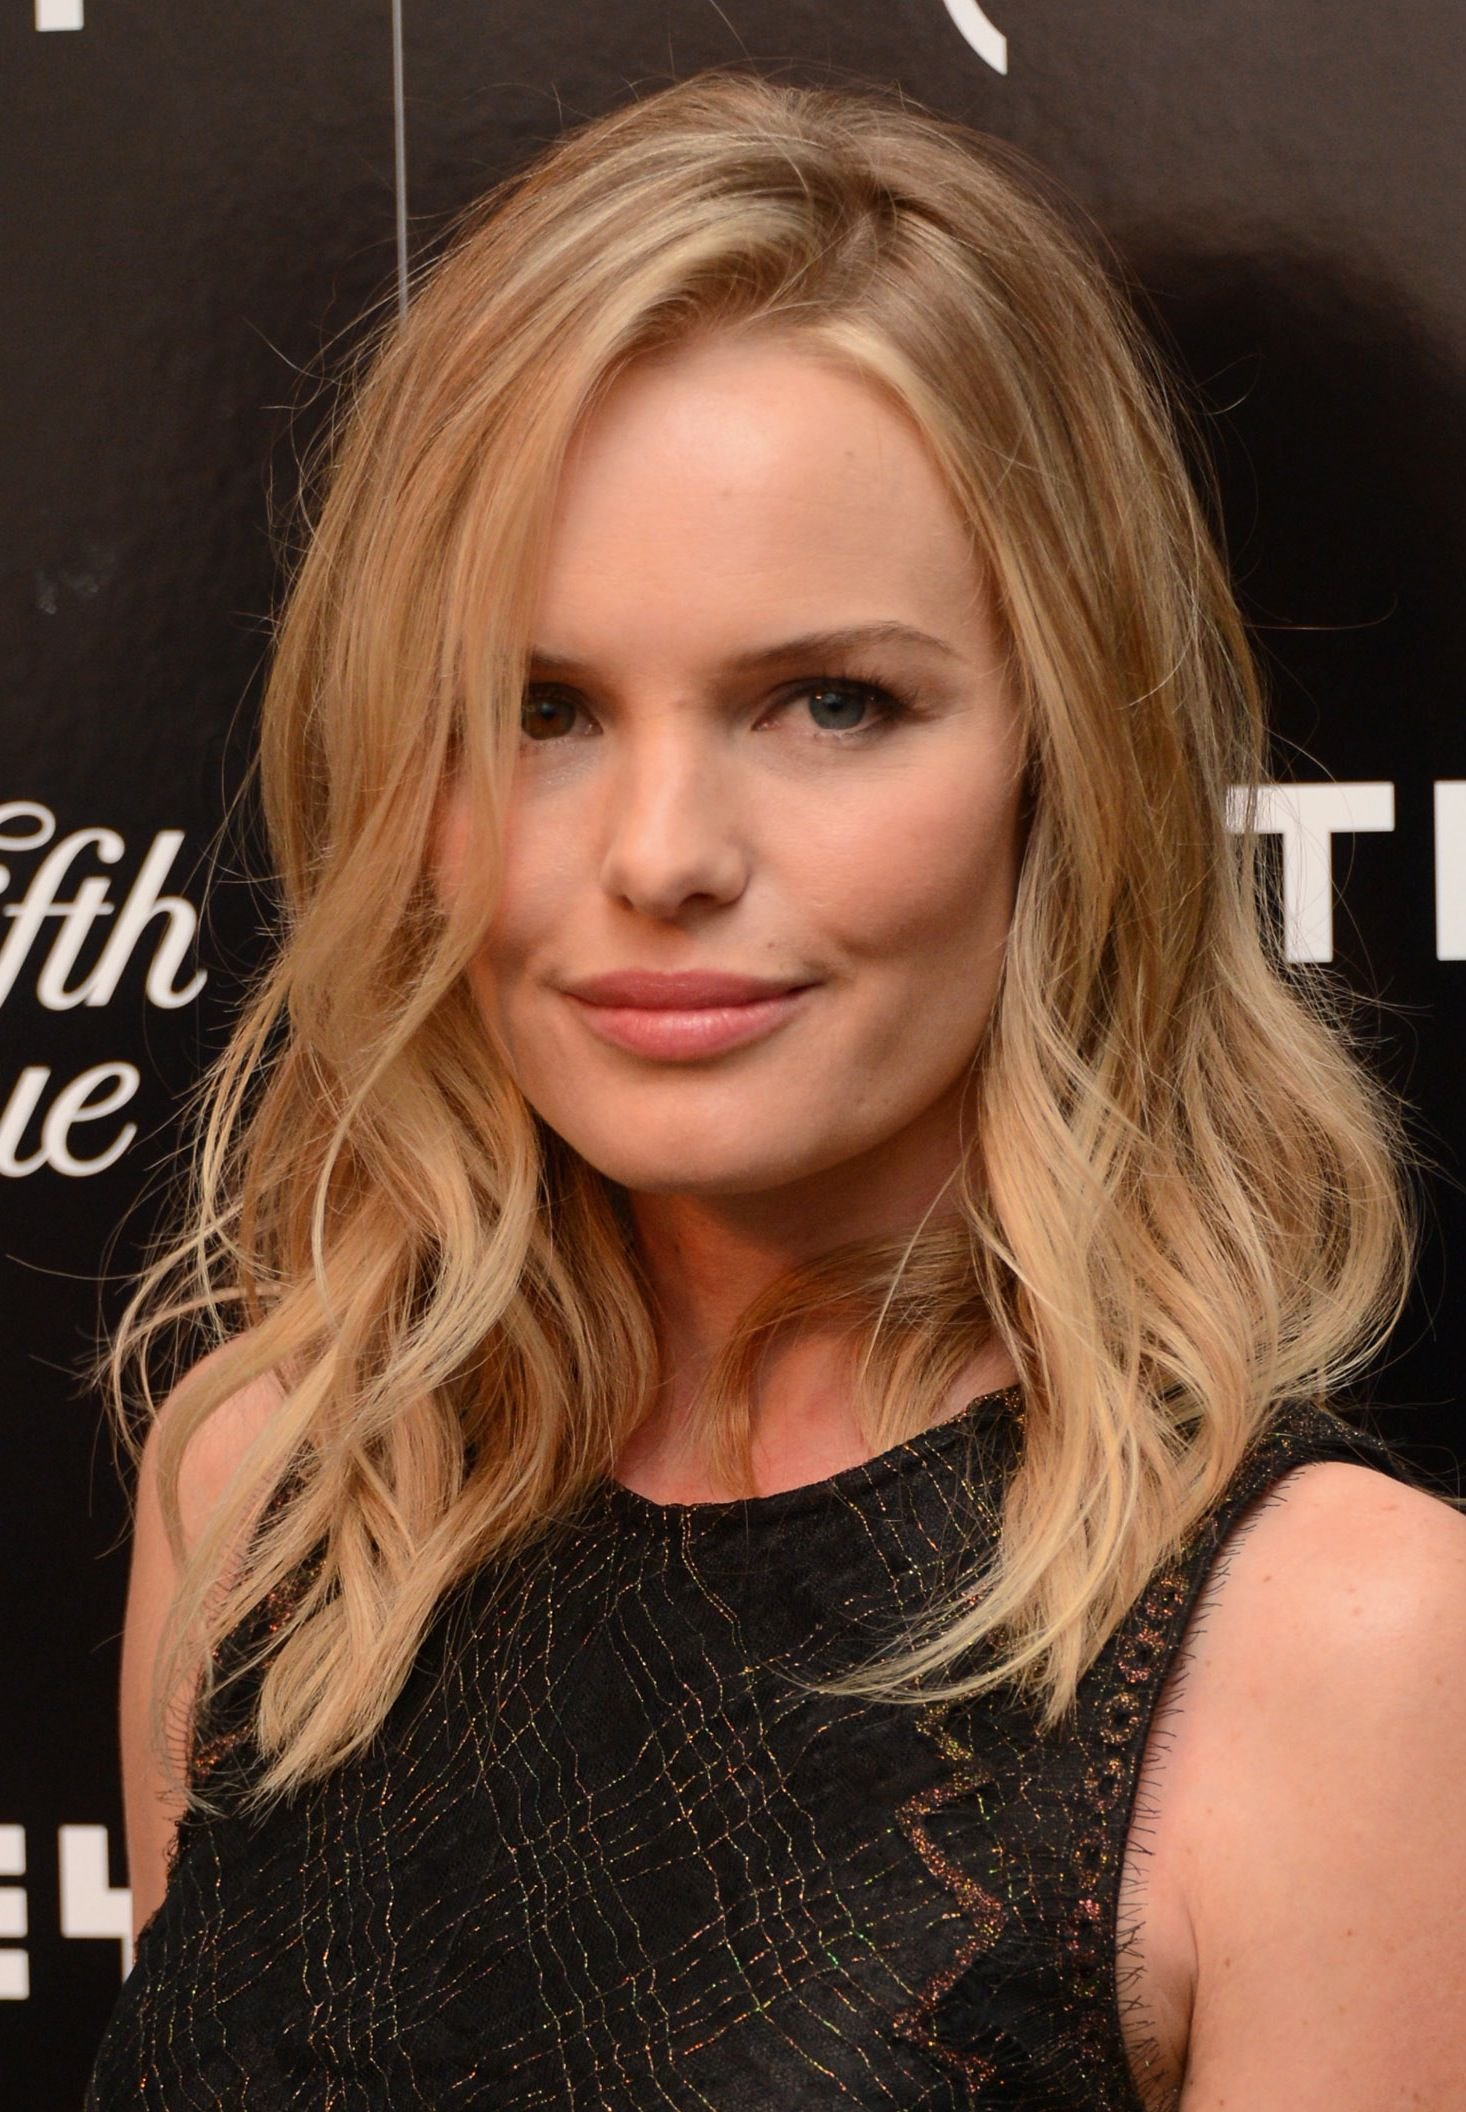 The Best Flattering Celebrity Hairstyles For Round Faces Pictures